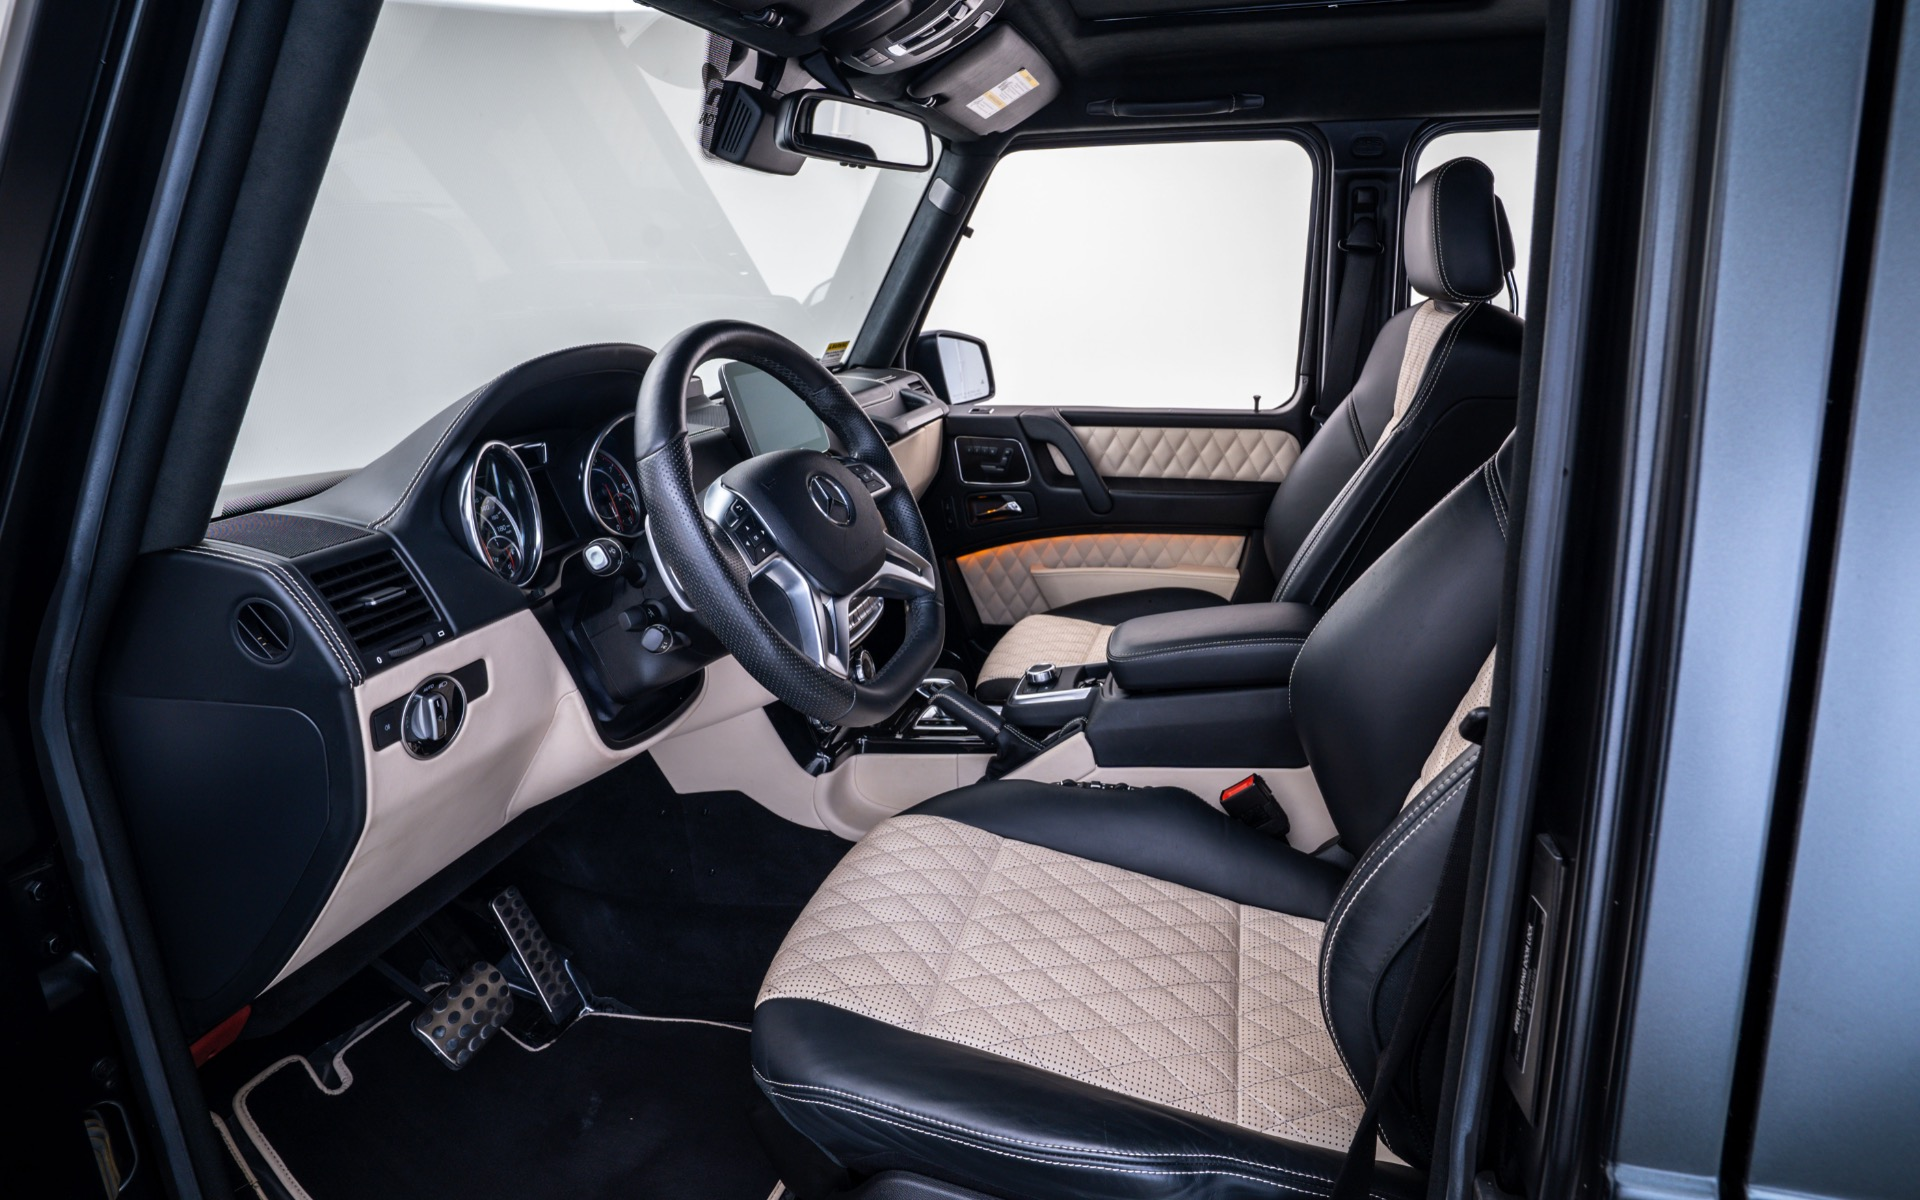 Used 2018 Mercedes-Benz G63 AMG 4x4 | Norwell, MA